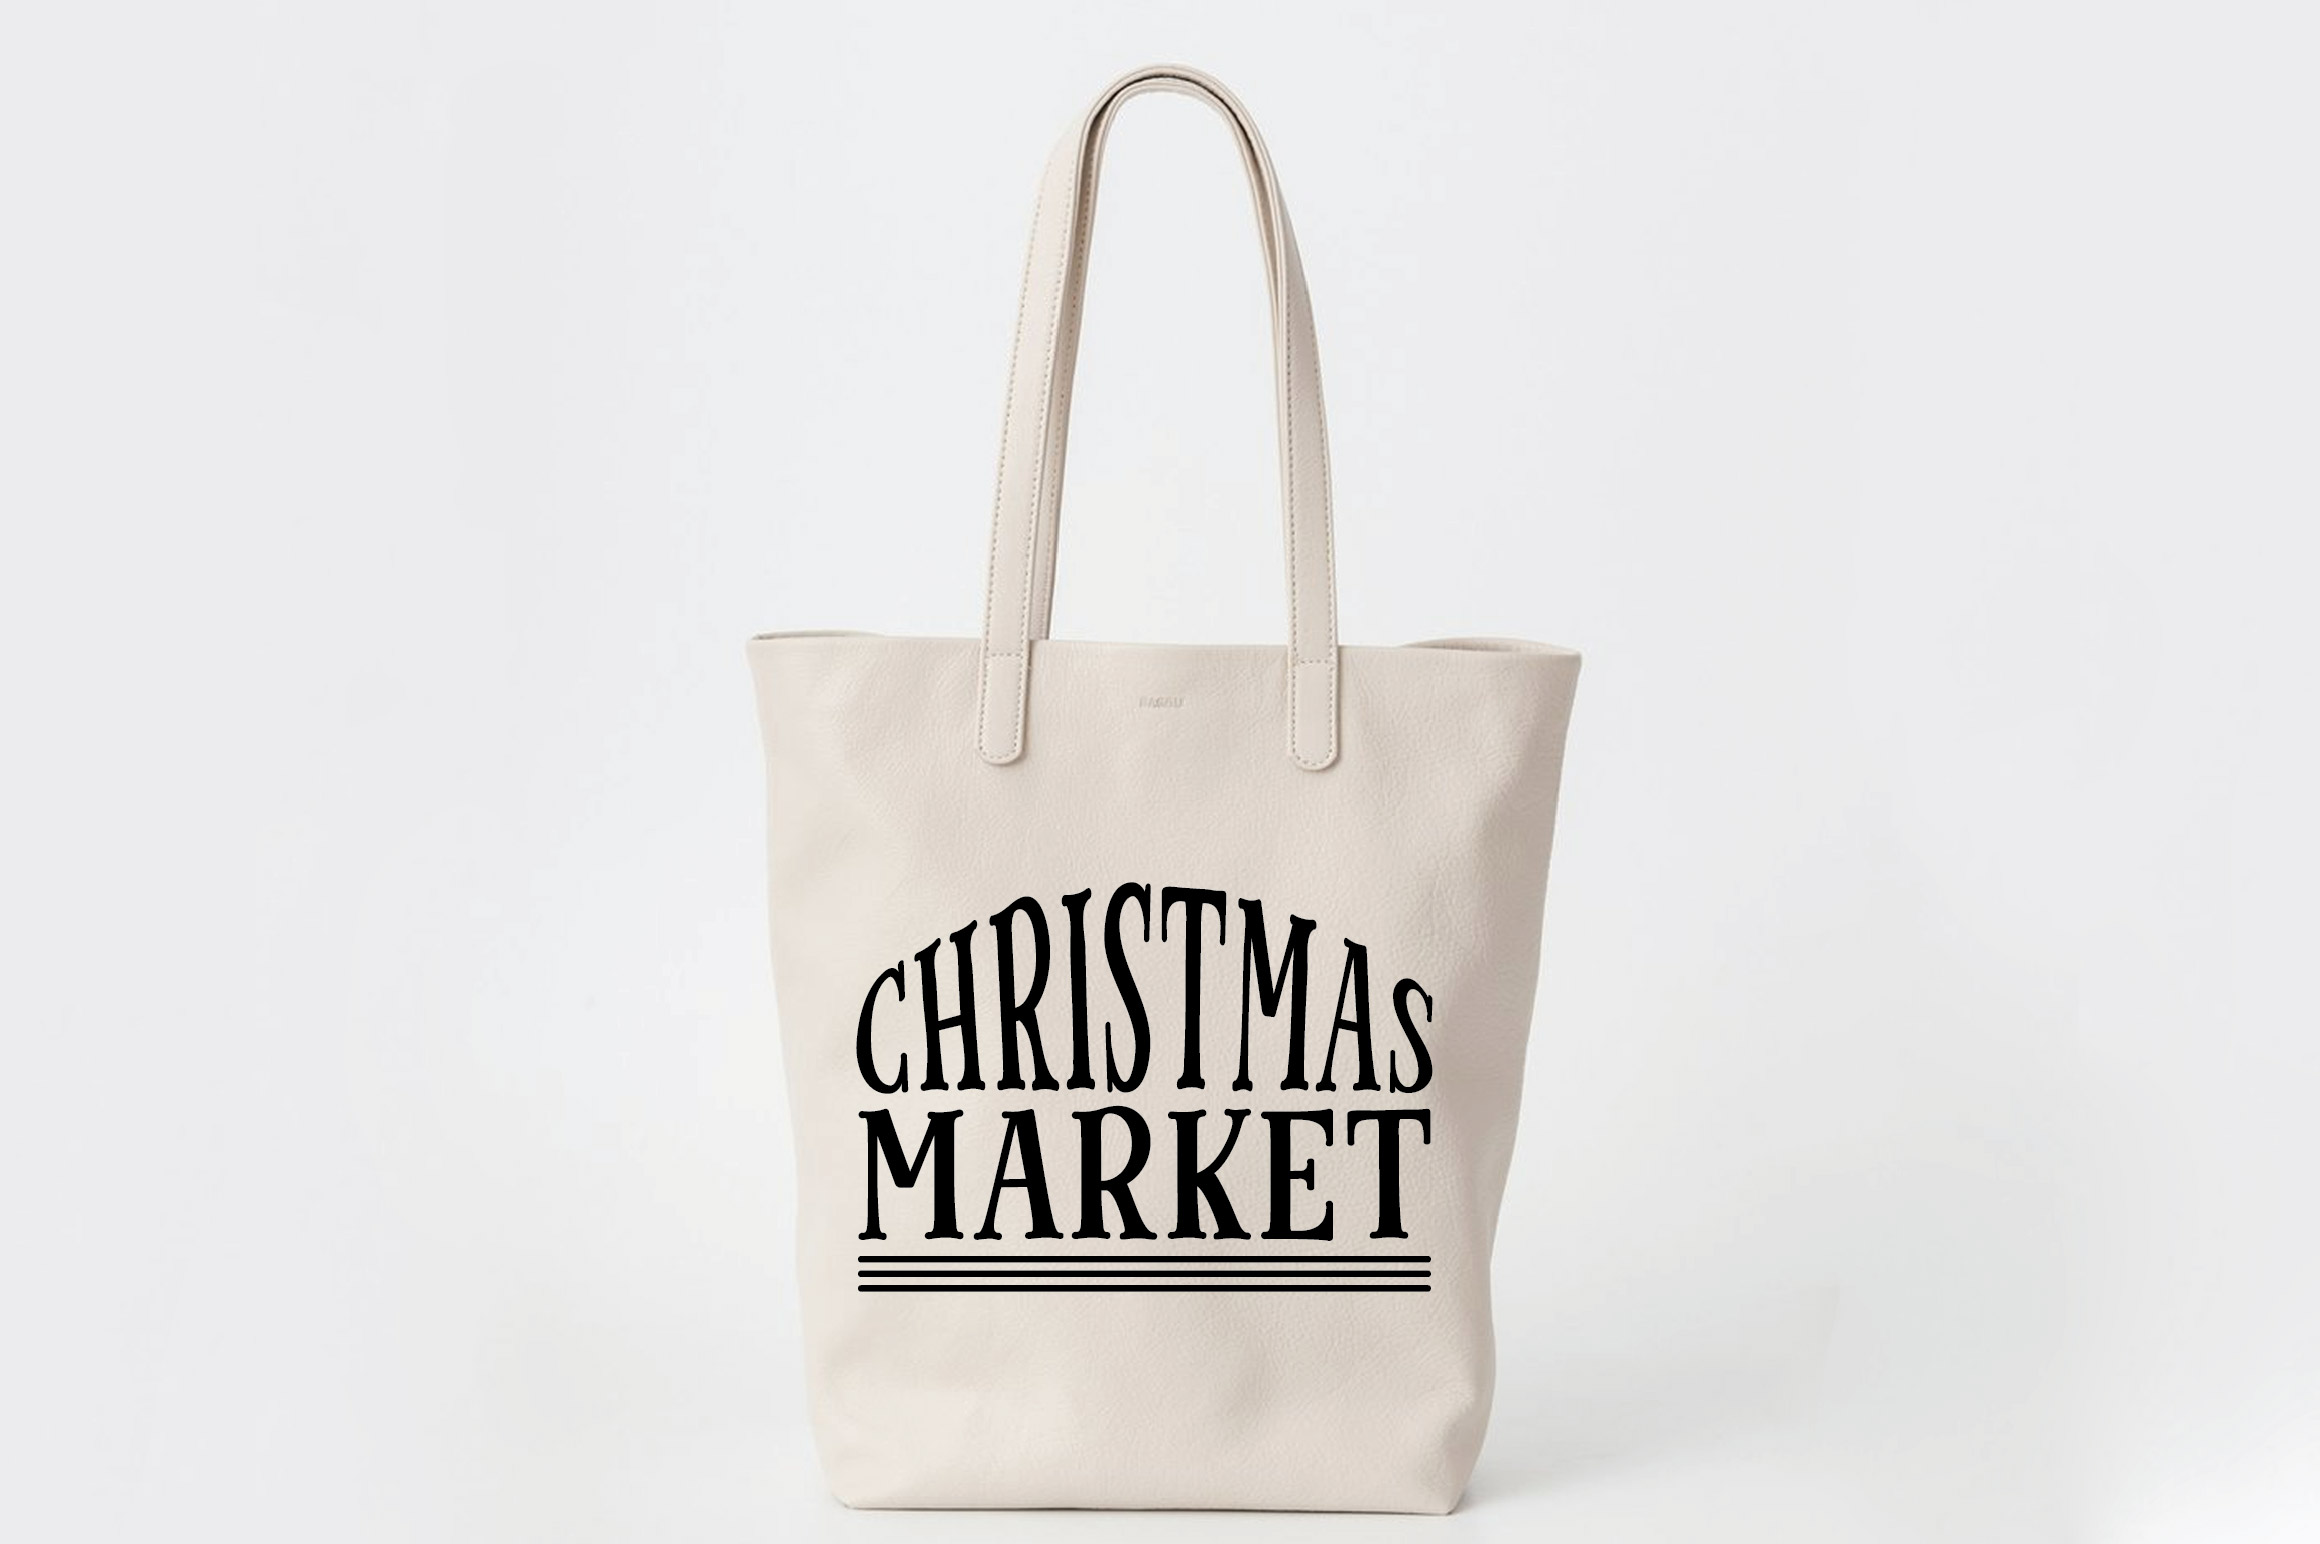 Christmas SVG Cut File - Christmas Market SVG DXF PNG EPS example image 8